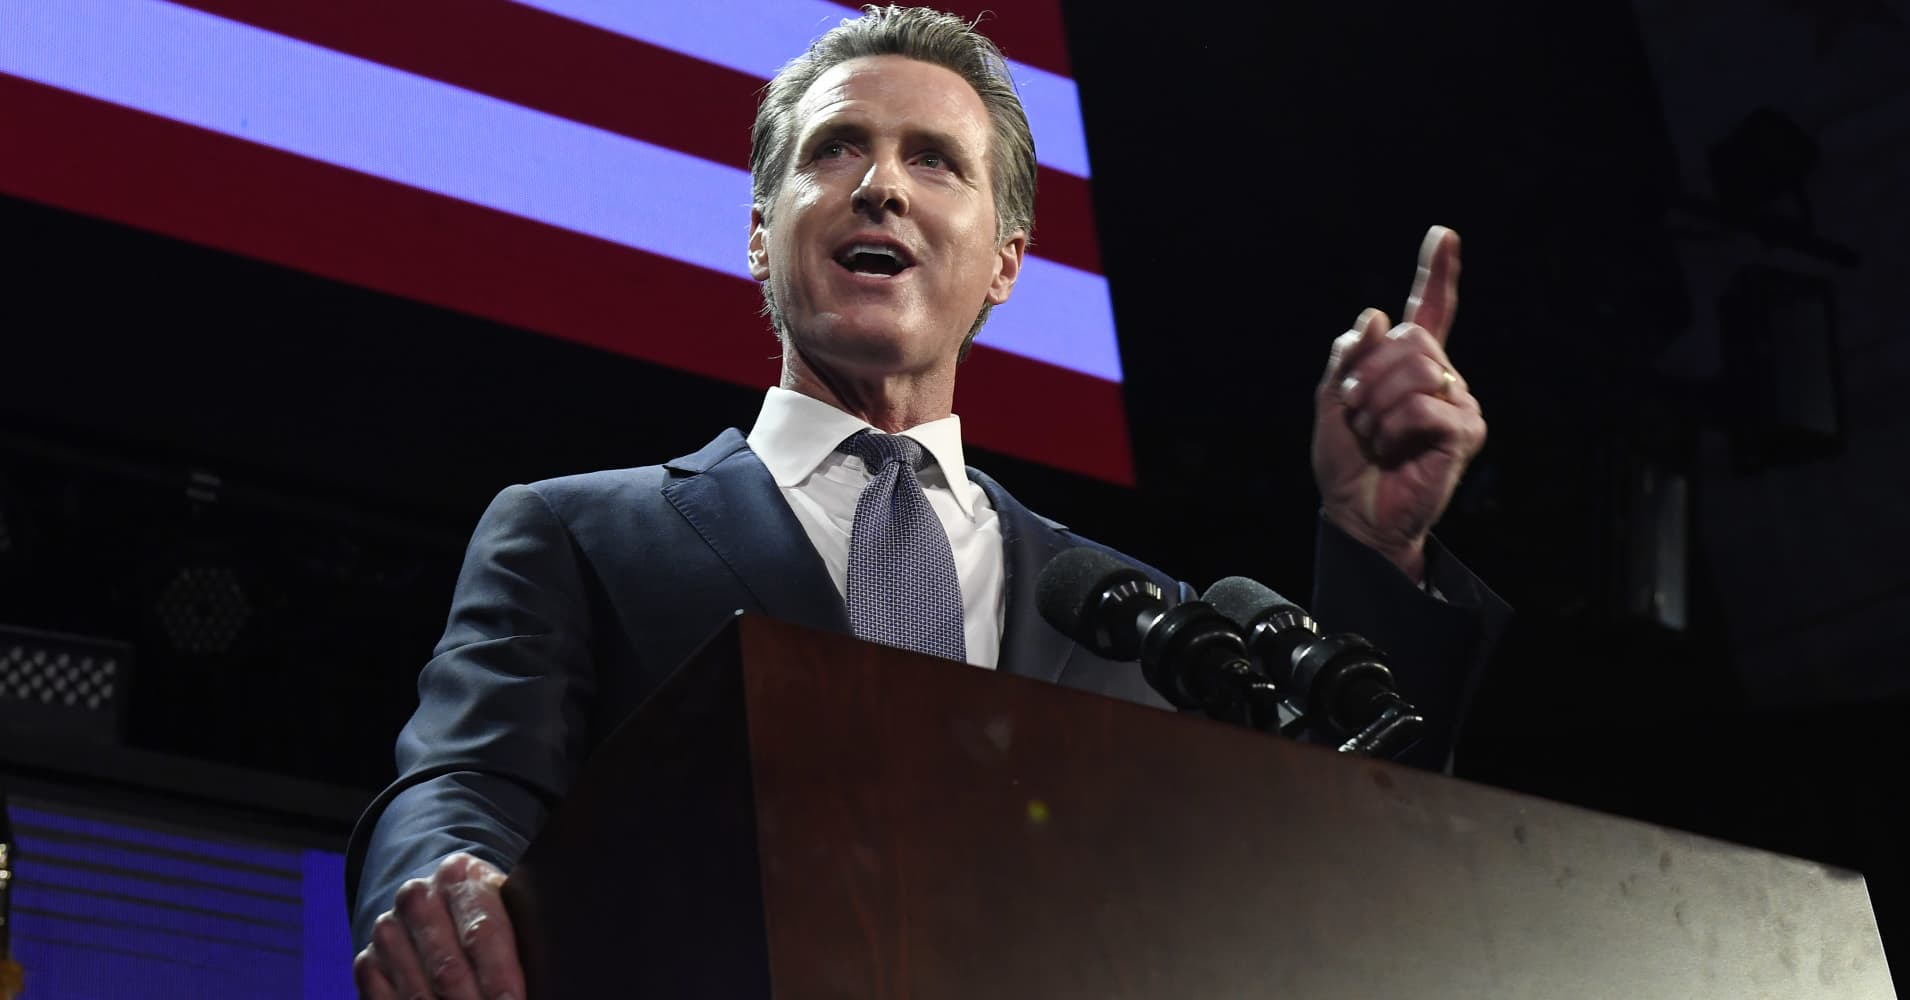 California Gov. Newsom calls for 'new data dividend' for consumers